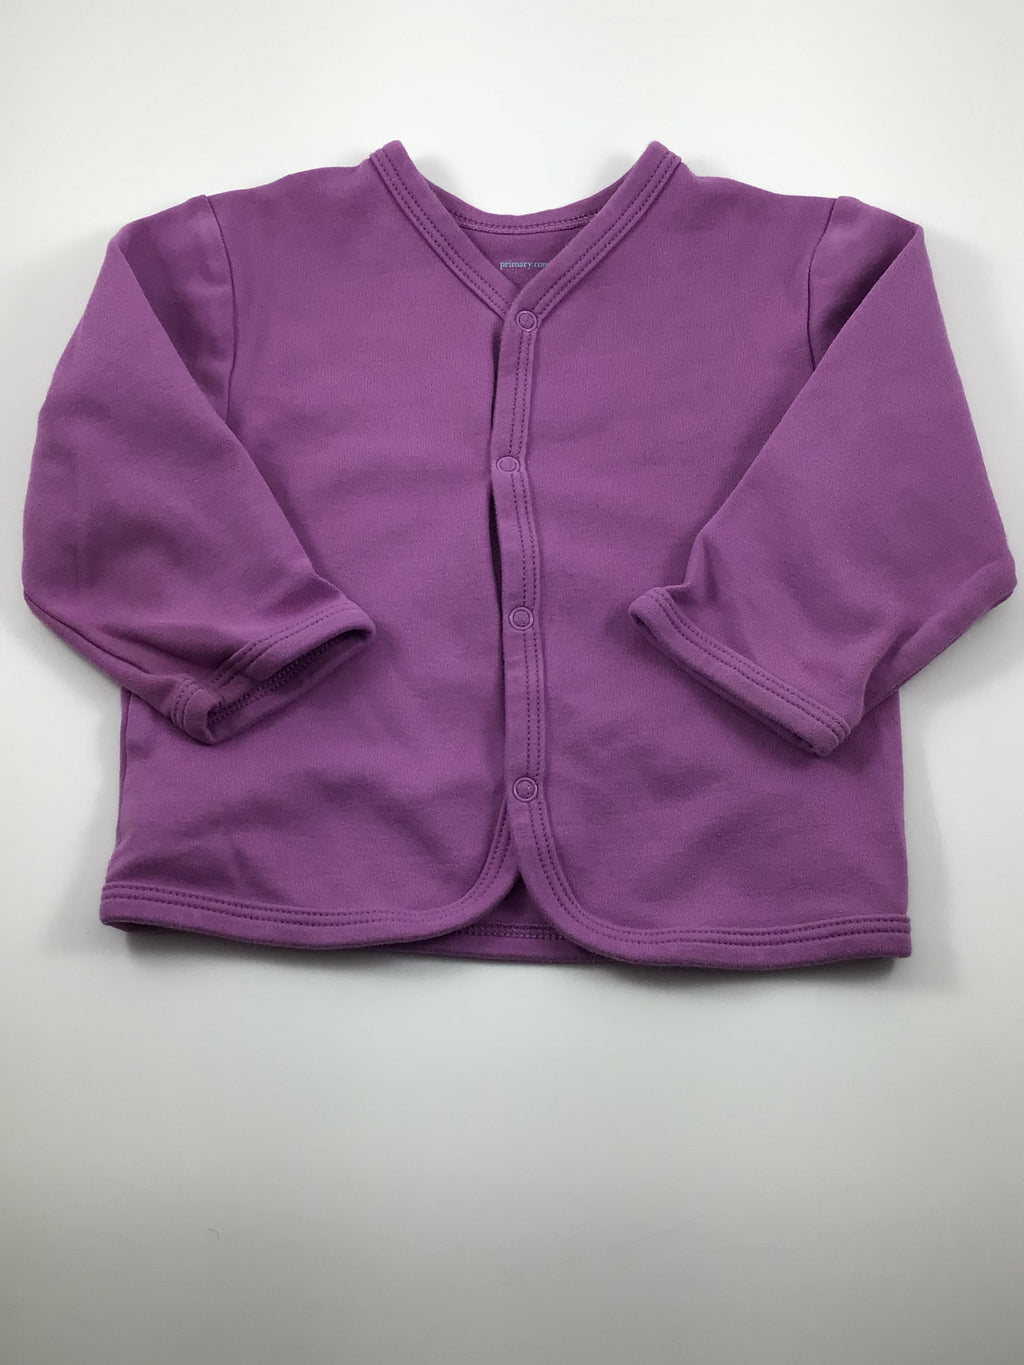 Girl's Long Sleeve Shirt - Size 18-24mo